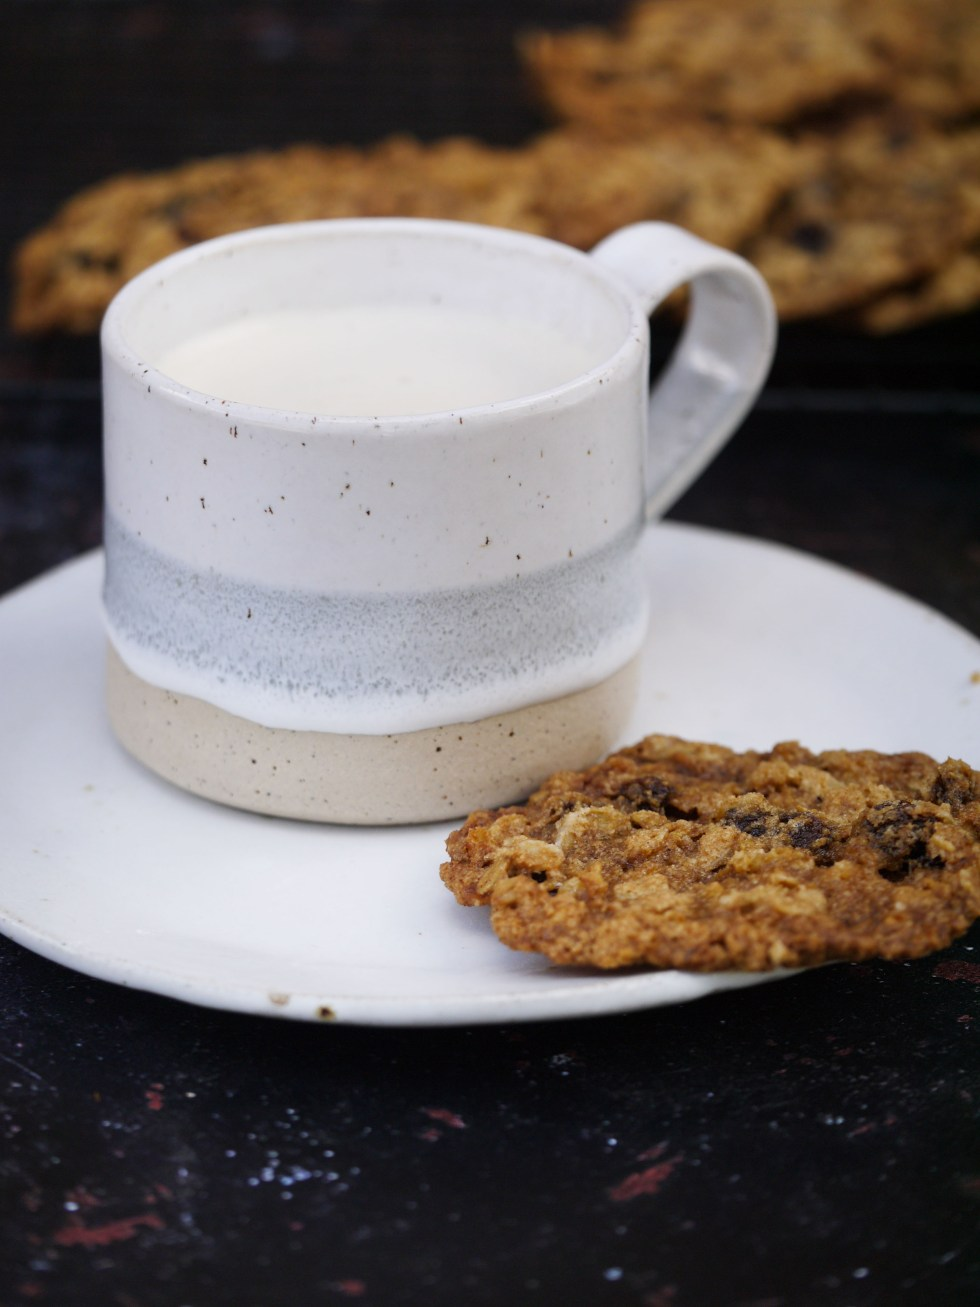 Coffee on saucer with chewy oatmeal and sultana cookie with cookies in background